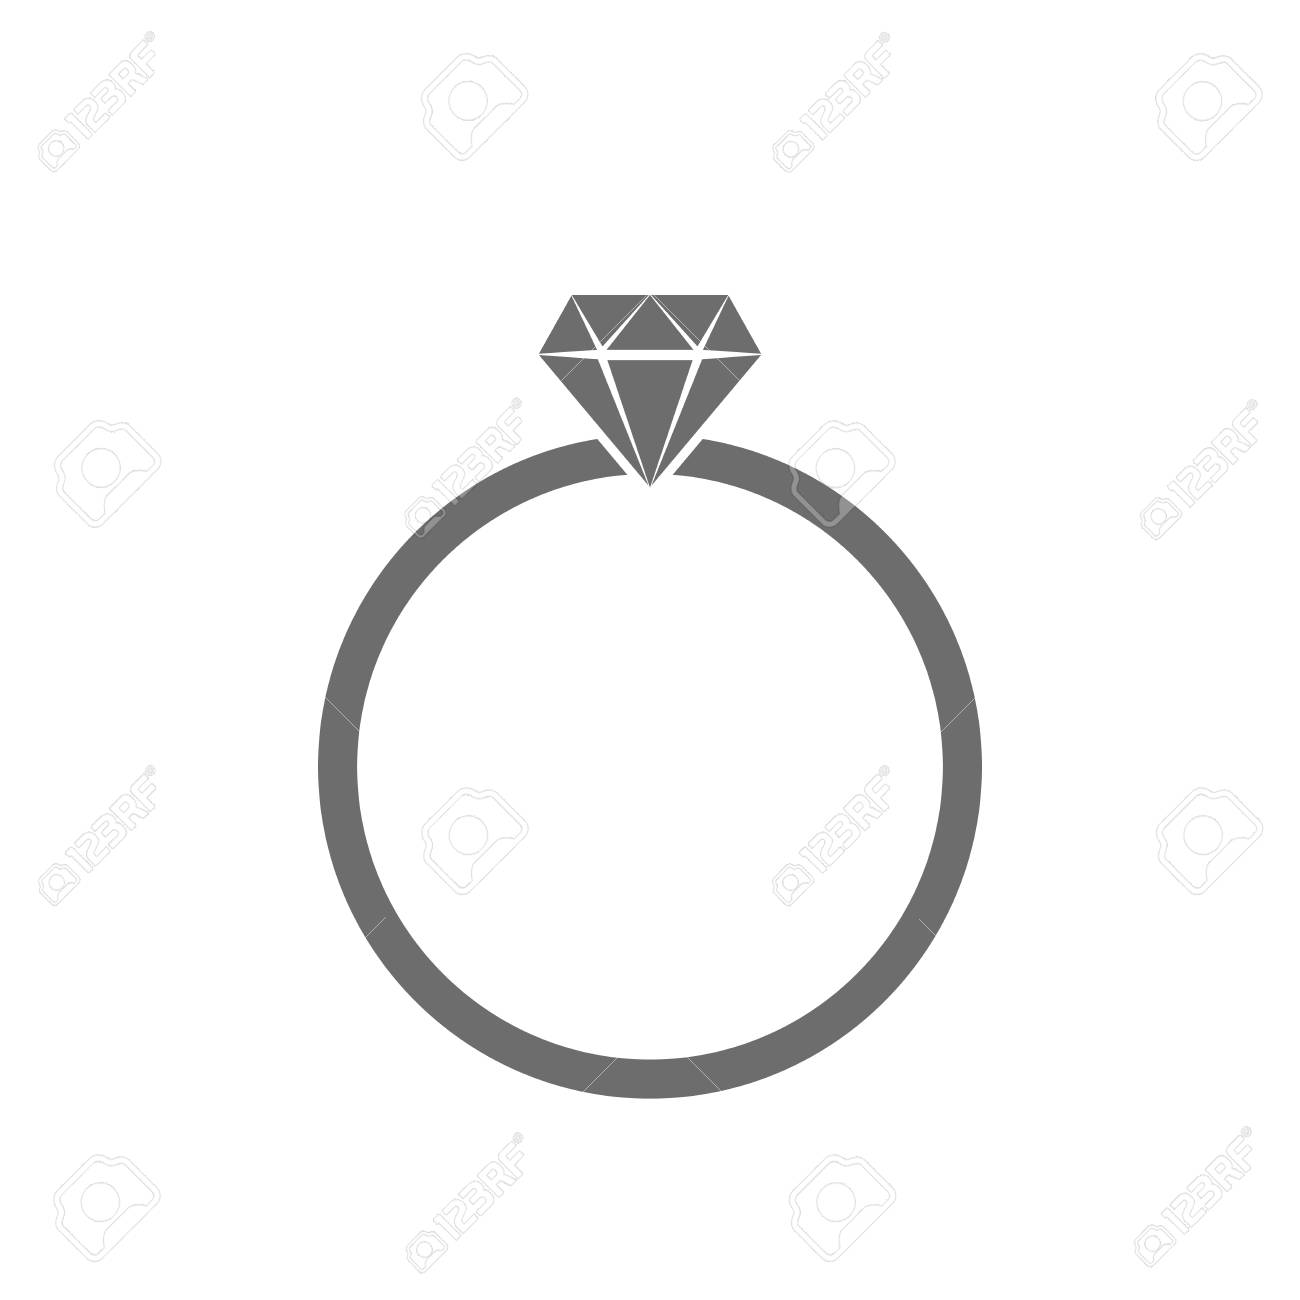 Gray Wedding Ring Icon In Flat Design Ring With Diamond Isolated